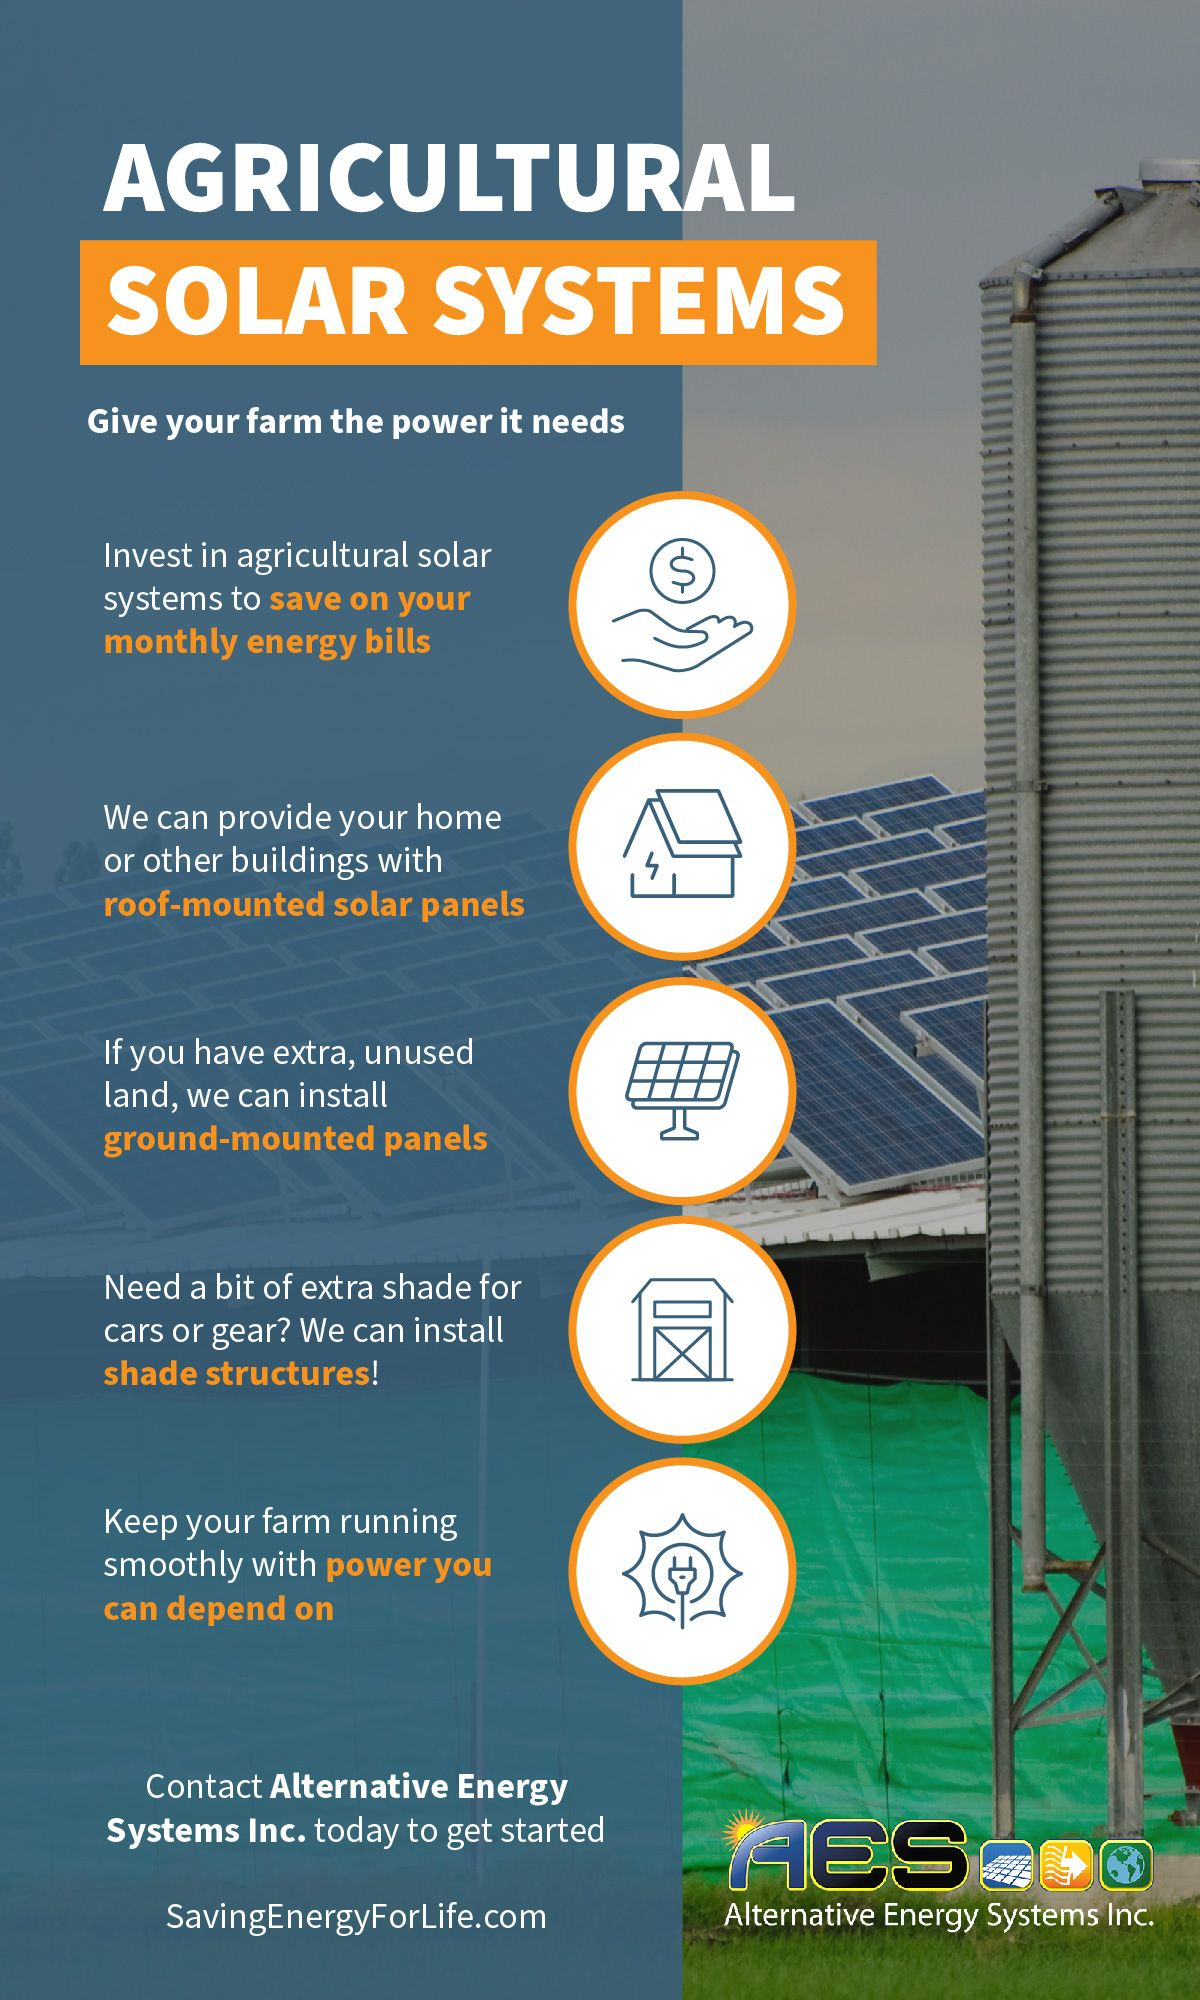 Agricultural Solar Systems Infographic.jpg